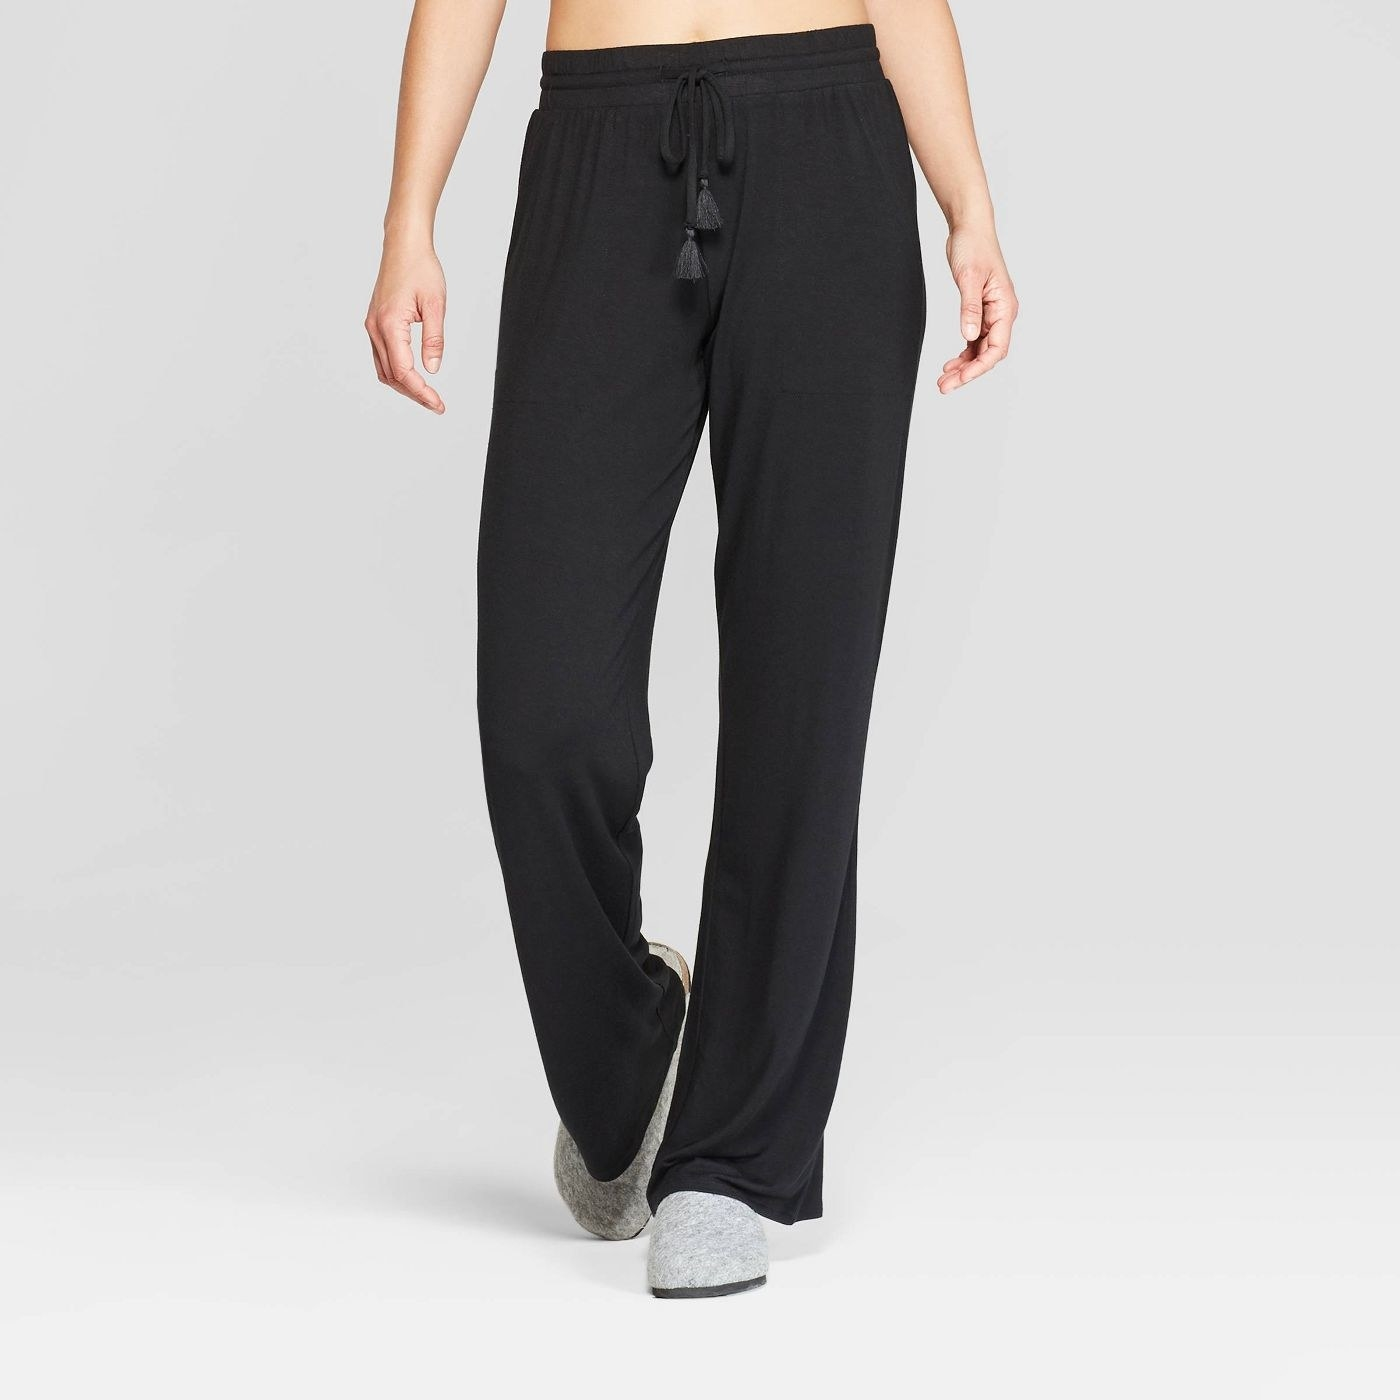 Model in black pajama pants